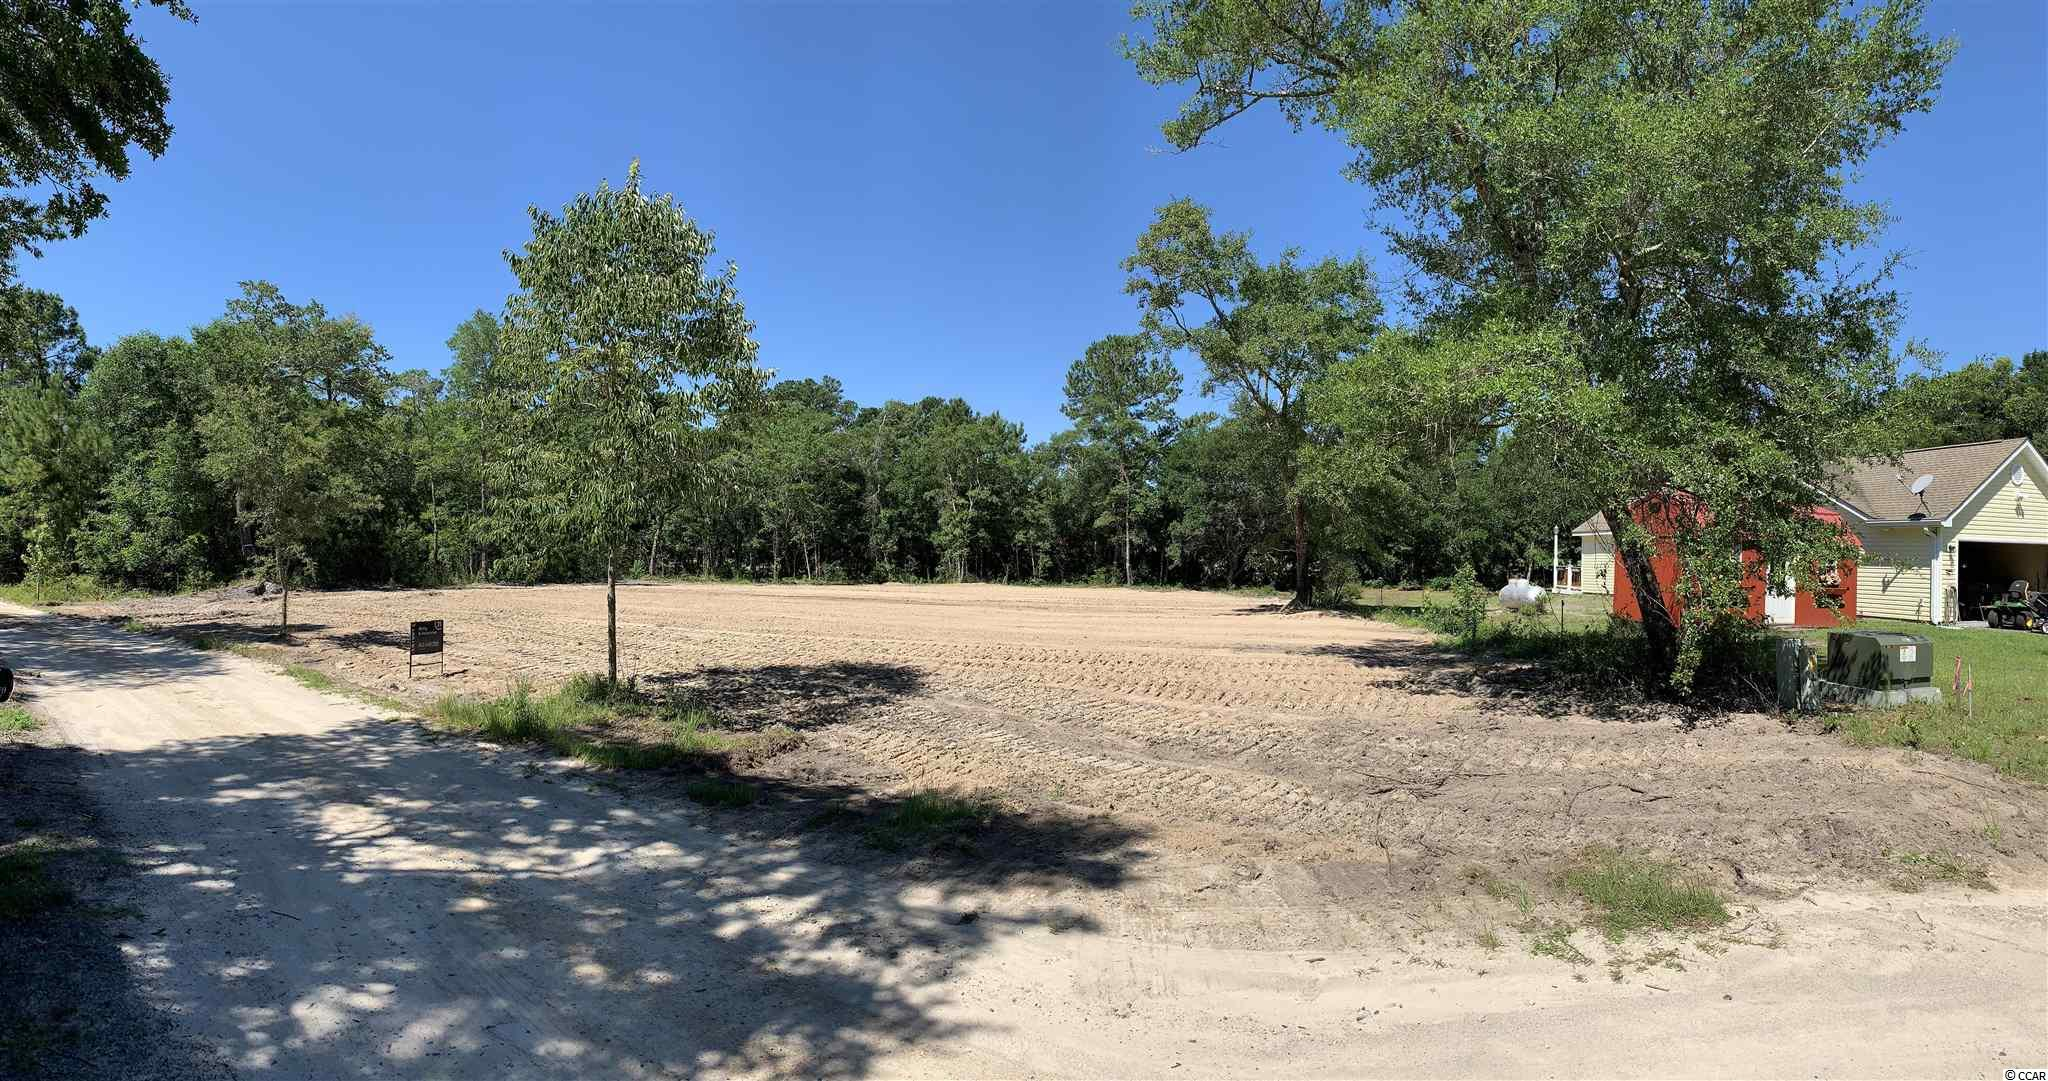 One of a kind opportunity to own perfect cul-de-sac cleared and ready to be build on residential lot in the fishing village of Little River where quiet and peaceful lifestyle awaits! Minutes from the Intercoastal Waterway, Little River Inlet, and everything North Myrtle Beach has to offer. Almost half acre lot creates a large building site for your dream home! Many custom homes are being build in this beautiful quite neighborhood! With no HOA and only a few reasonable restrictions this community offers plenty of freedom to enjoy your new property. This is truly rare opportunity for a perfect location only minutes to Cherry Grove Beach and Atlantic ocean! Enjoy famous Little River Blue Crab Festival, The River Shrimp Festival and plenty of entertainment choices, restaurants, golf courses  and shops!